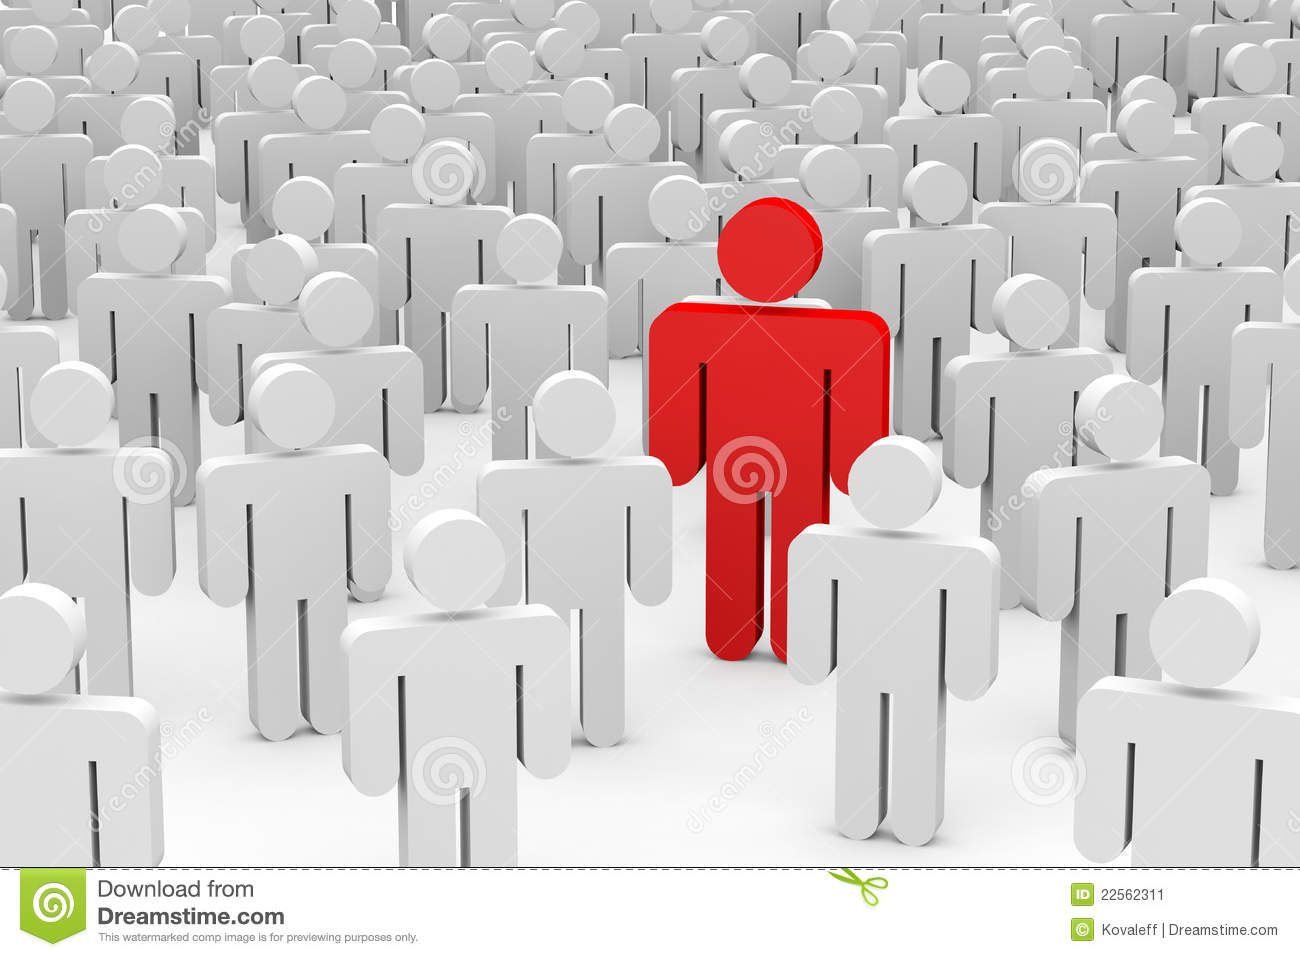 3D men in crowd. Concept of individuality.